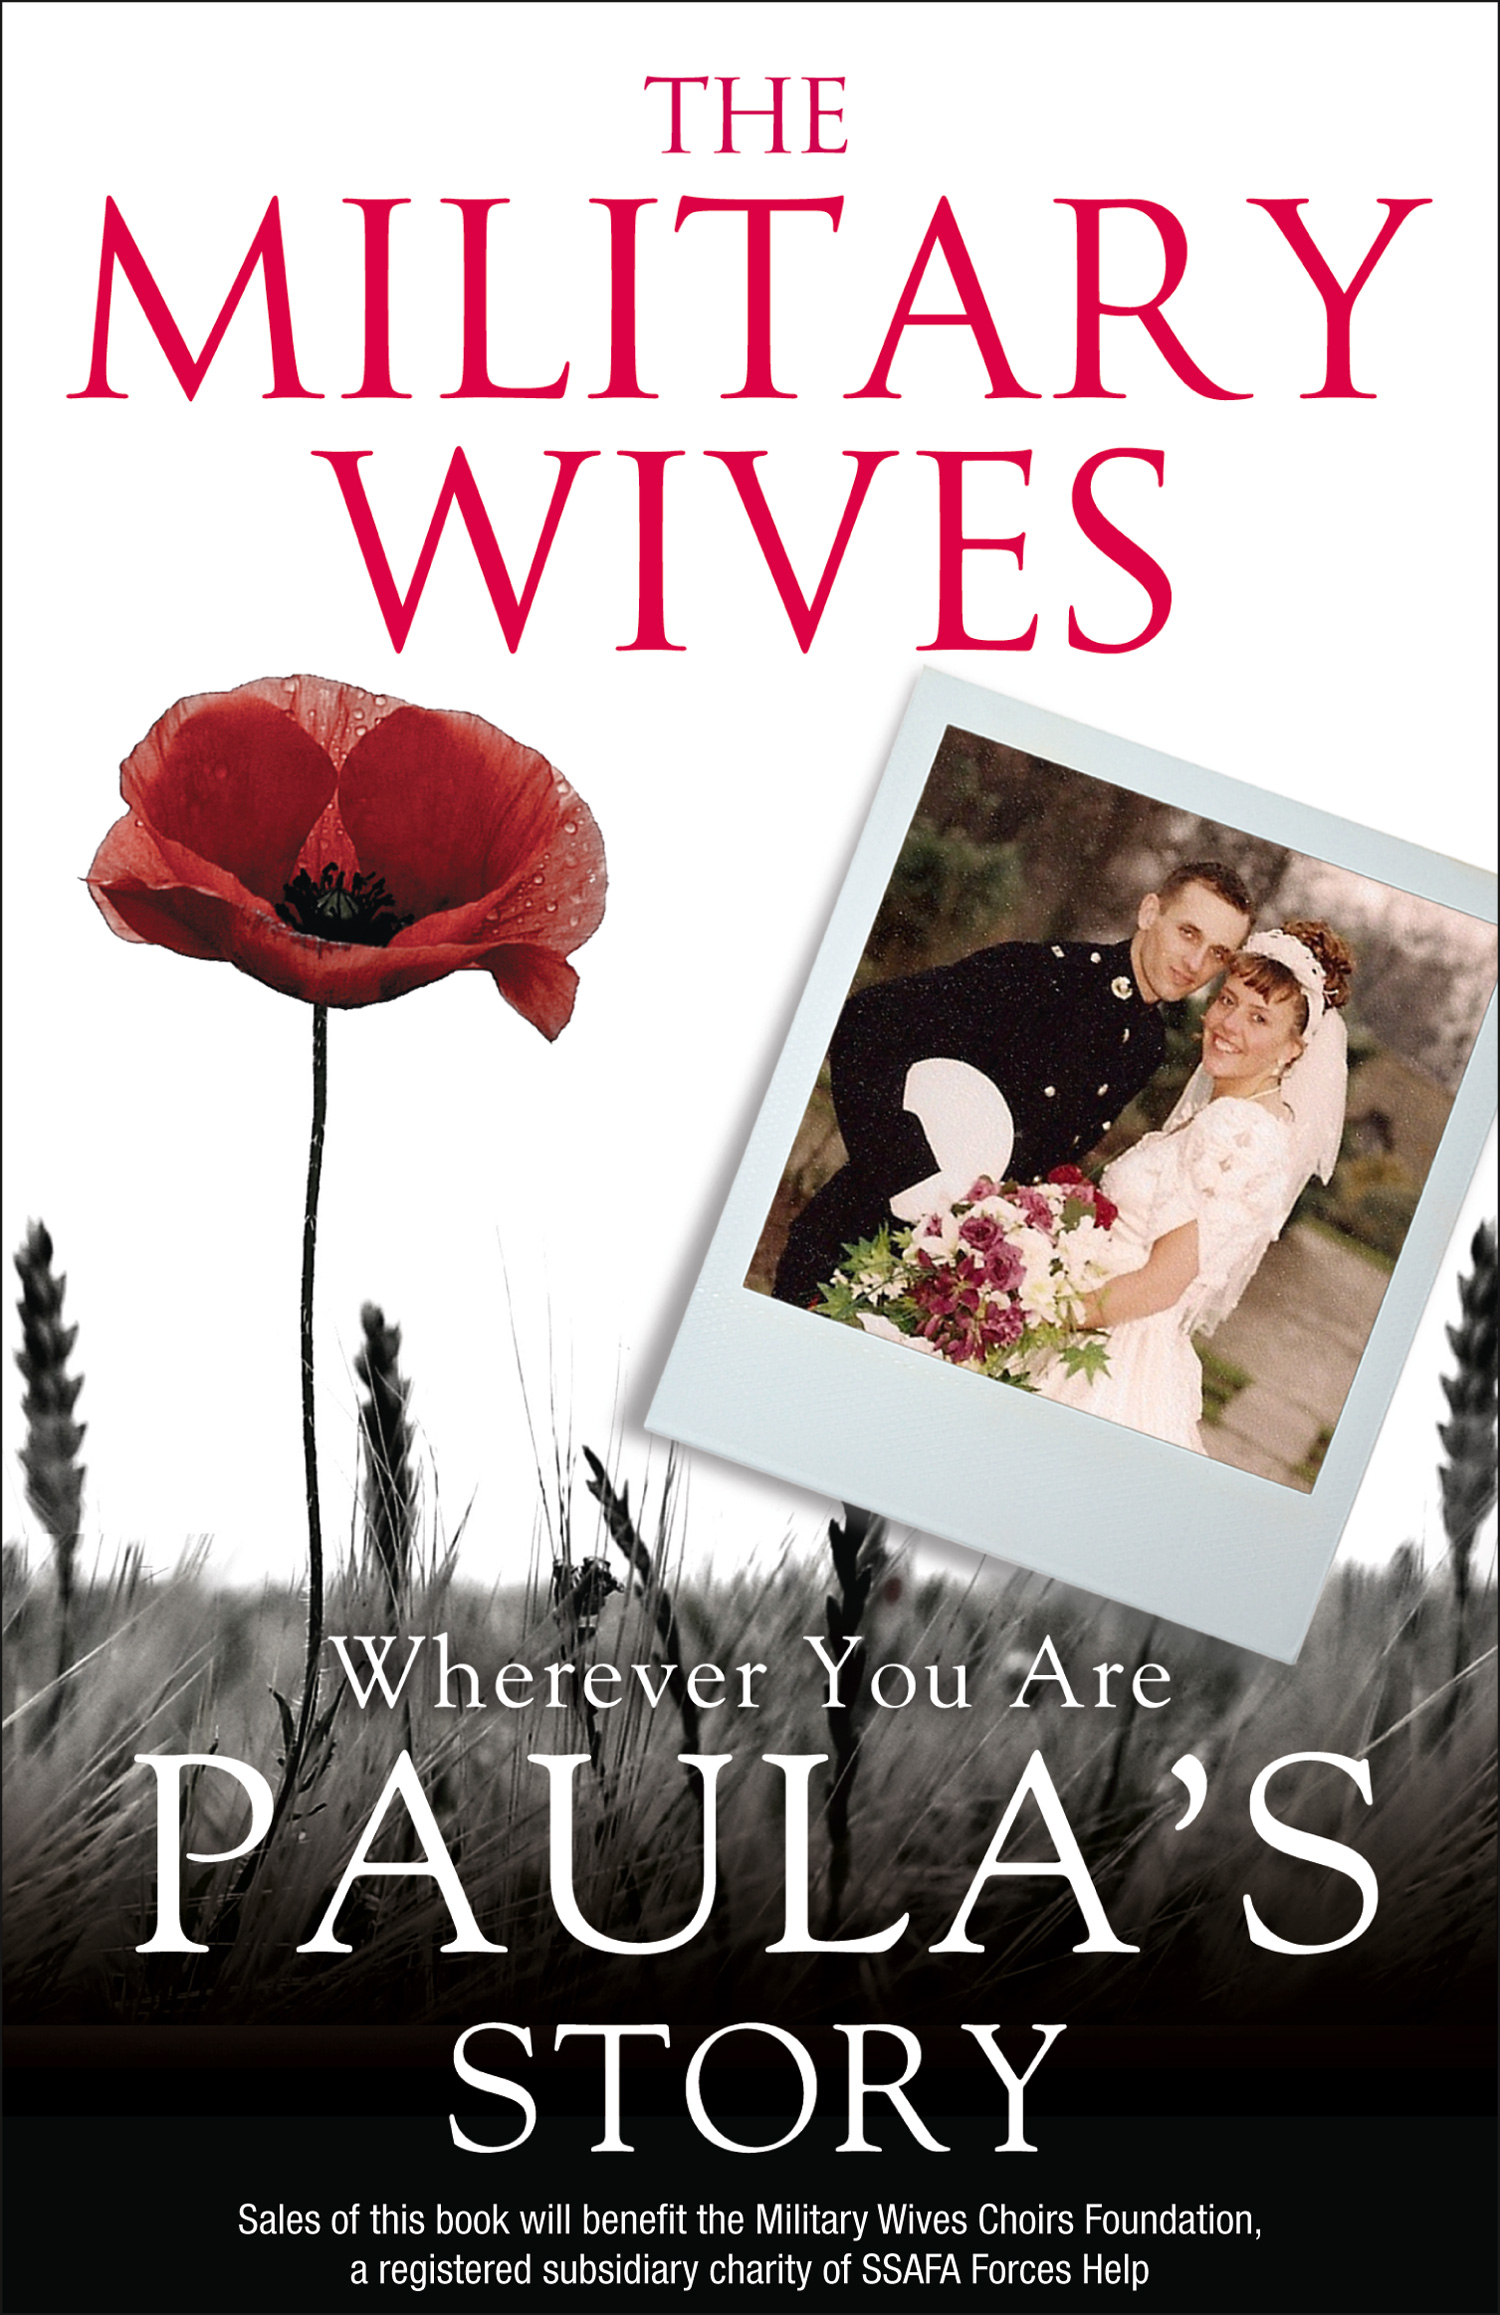 The Military Wives: Wherever You Are ? Paula?s Story